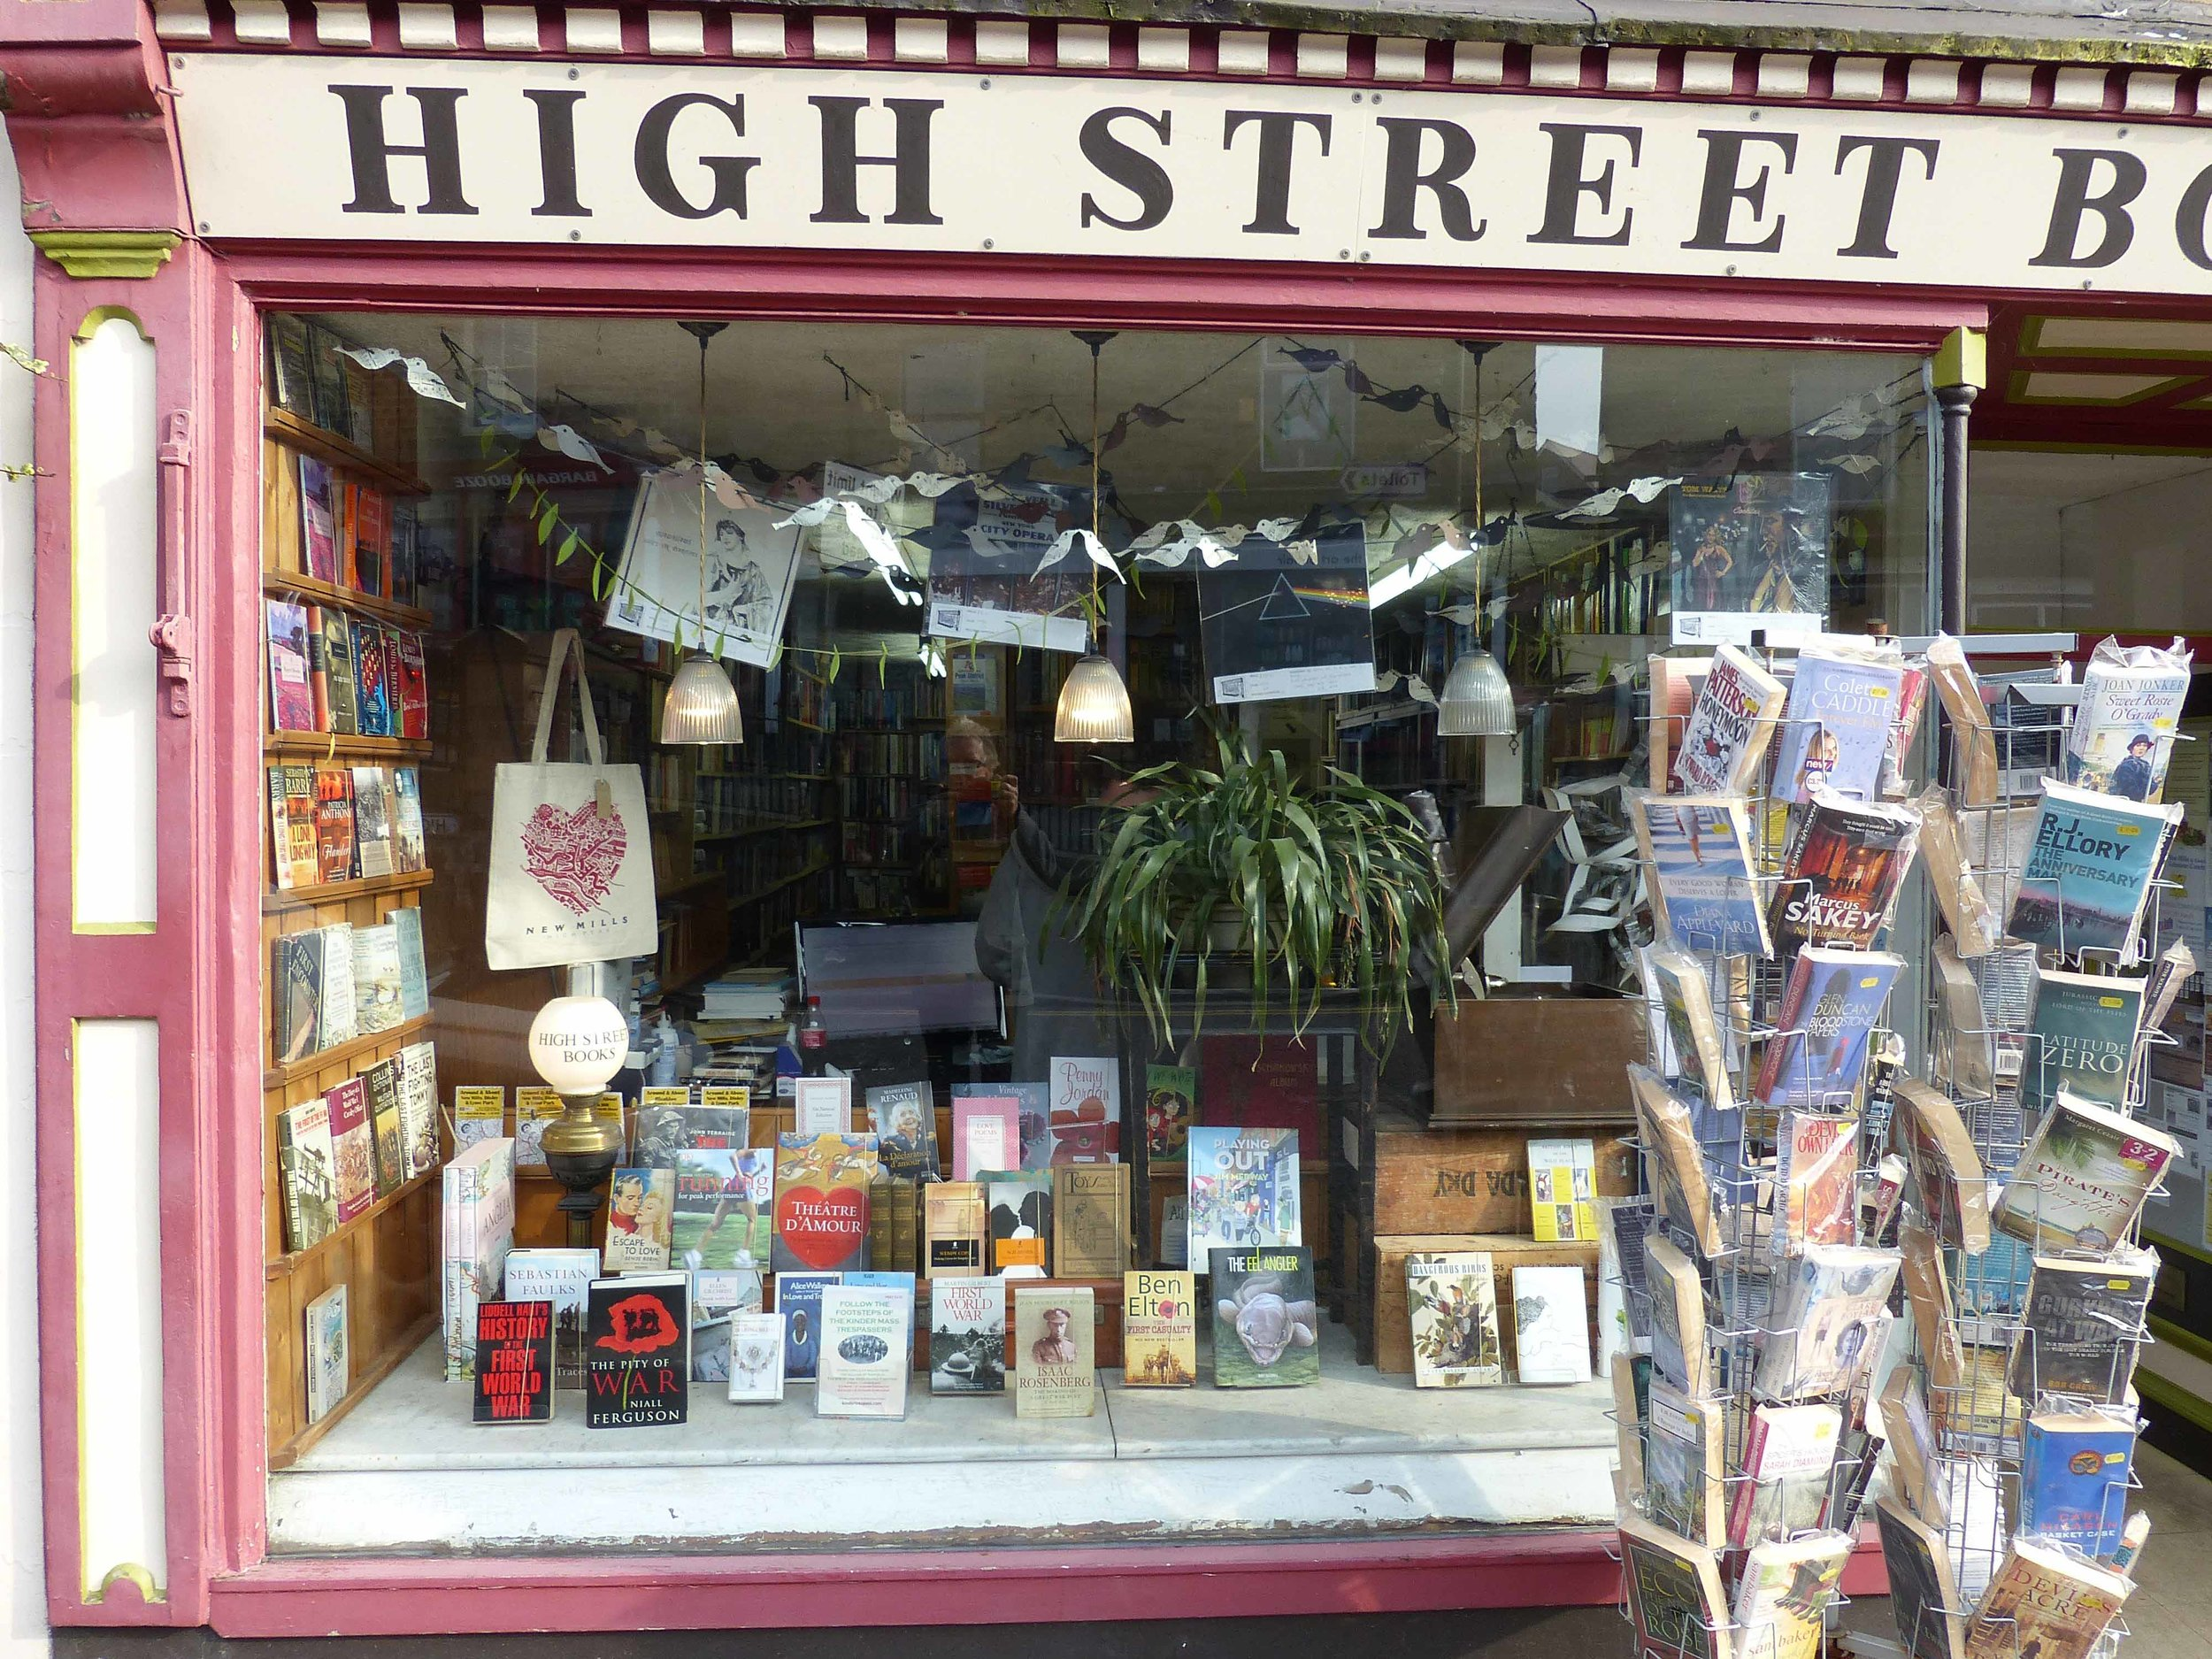 19. High Street Books